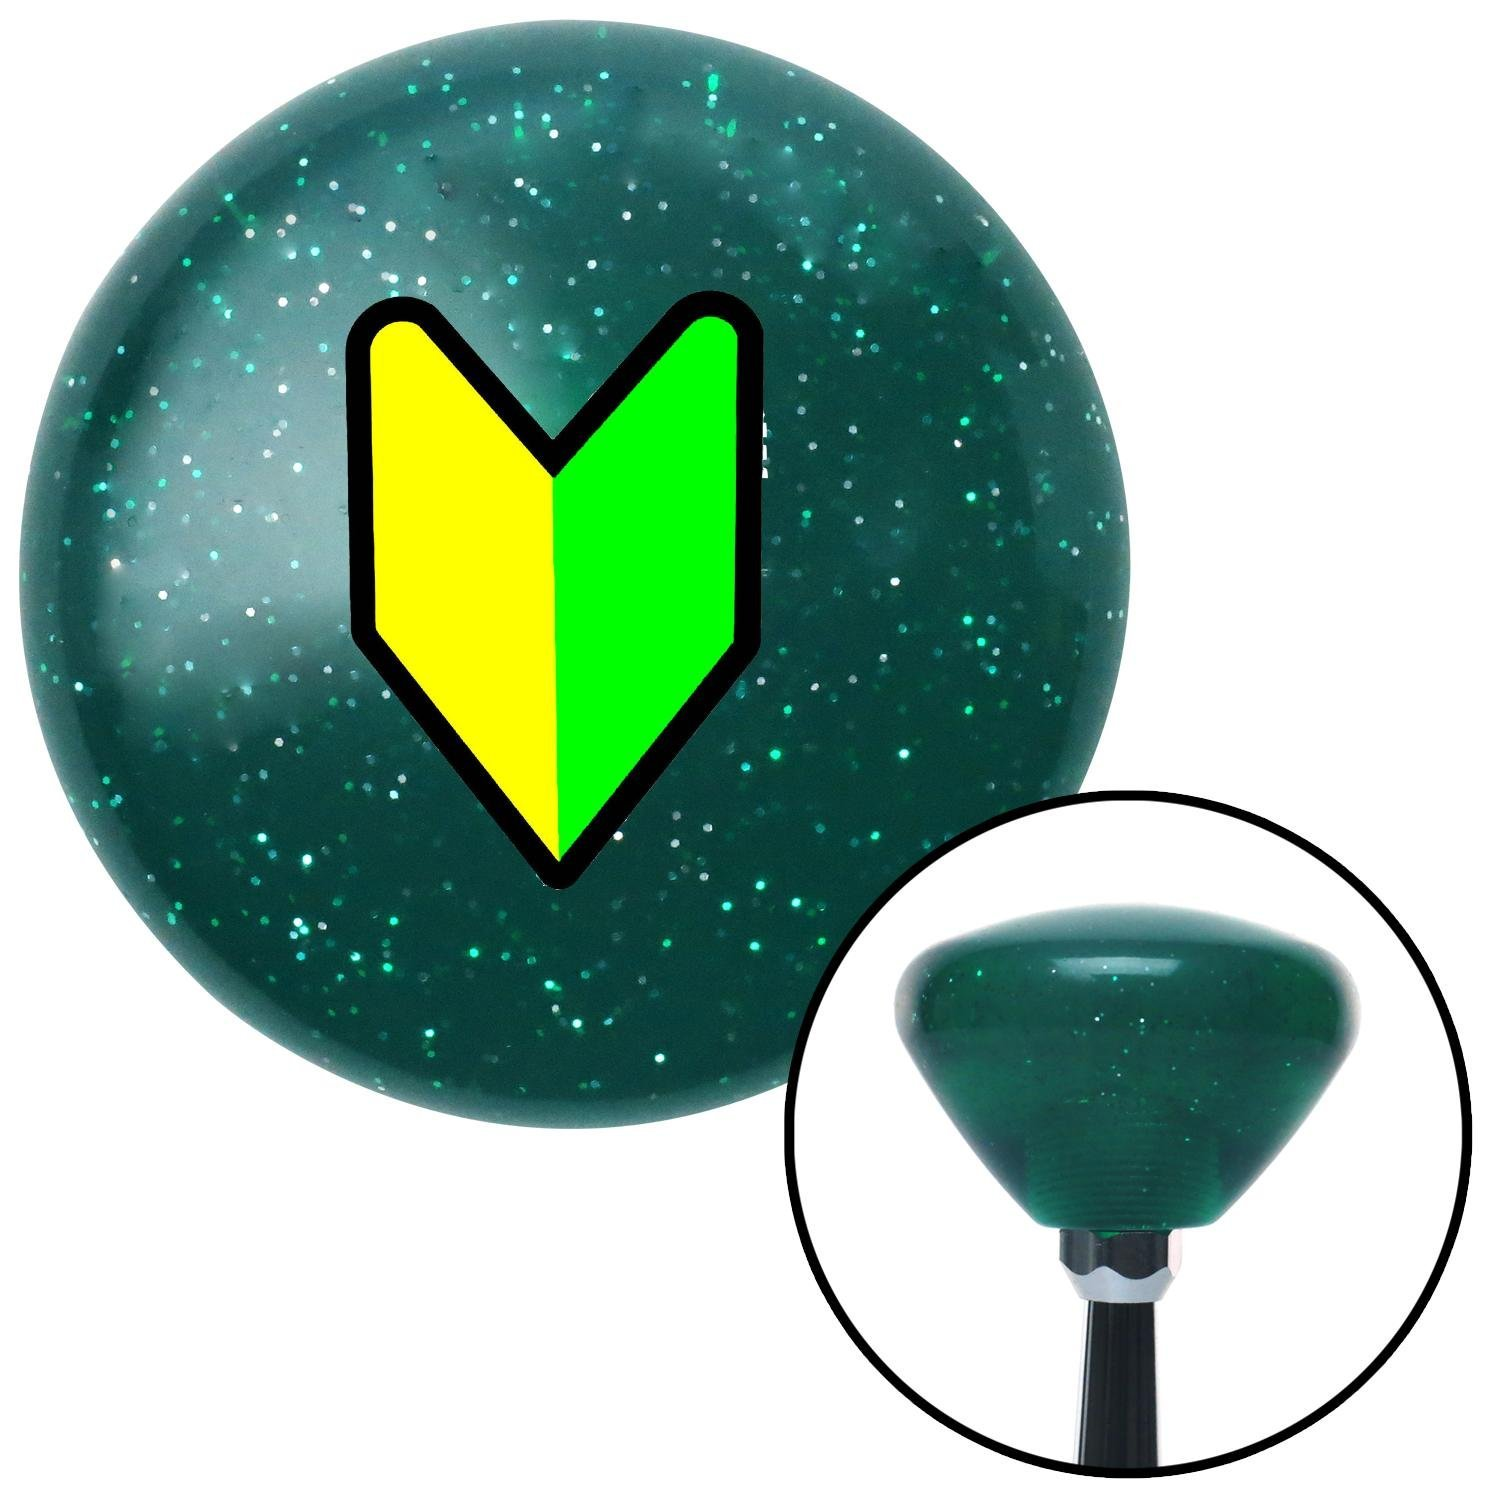 Traditional Wakaba Leaf American Shifter 207969 Green Retro Metal Flake Shift Knob with M16 x 1.5 Insert